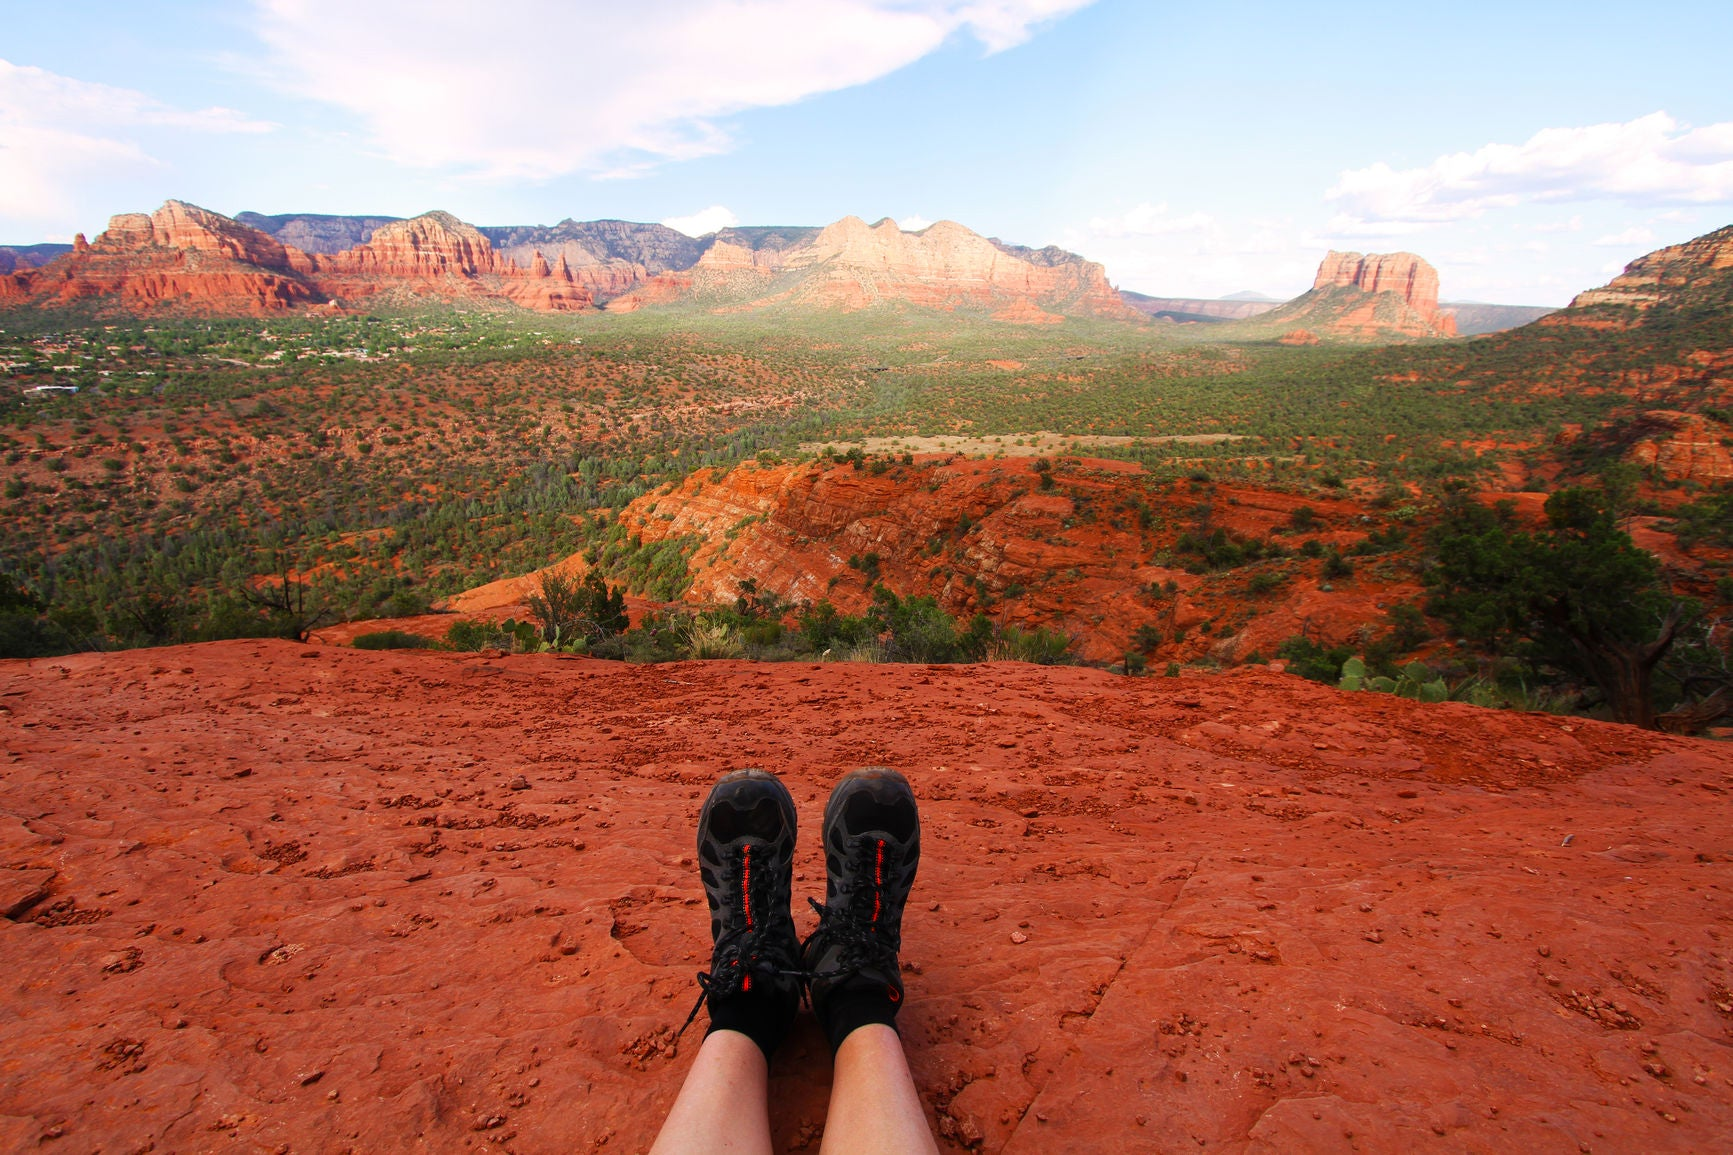 A runner sitting on a plateau overlooking a vista